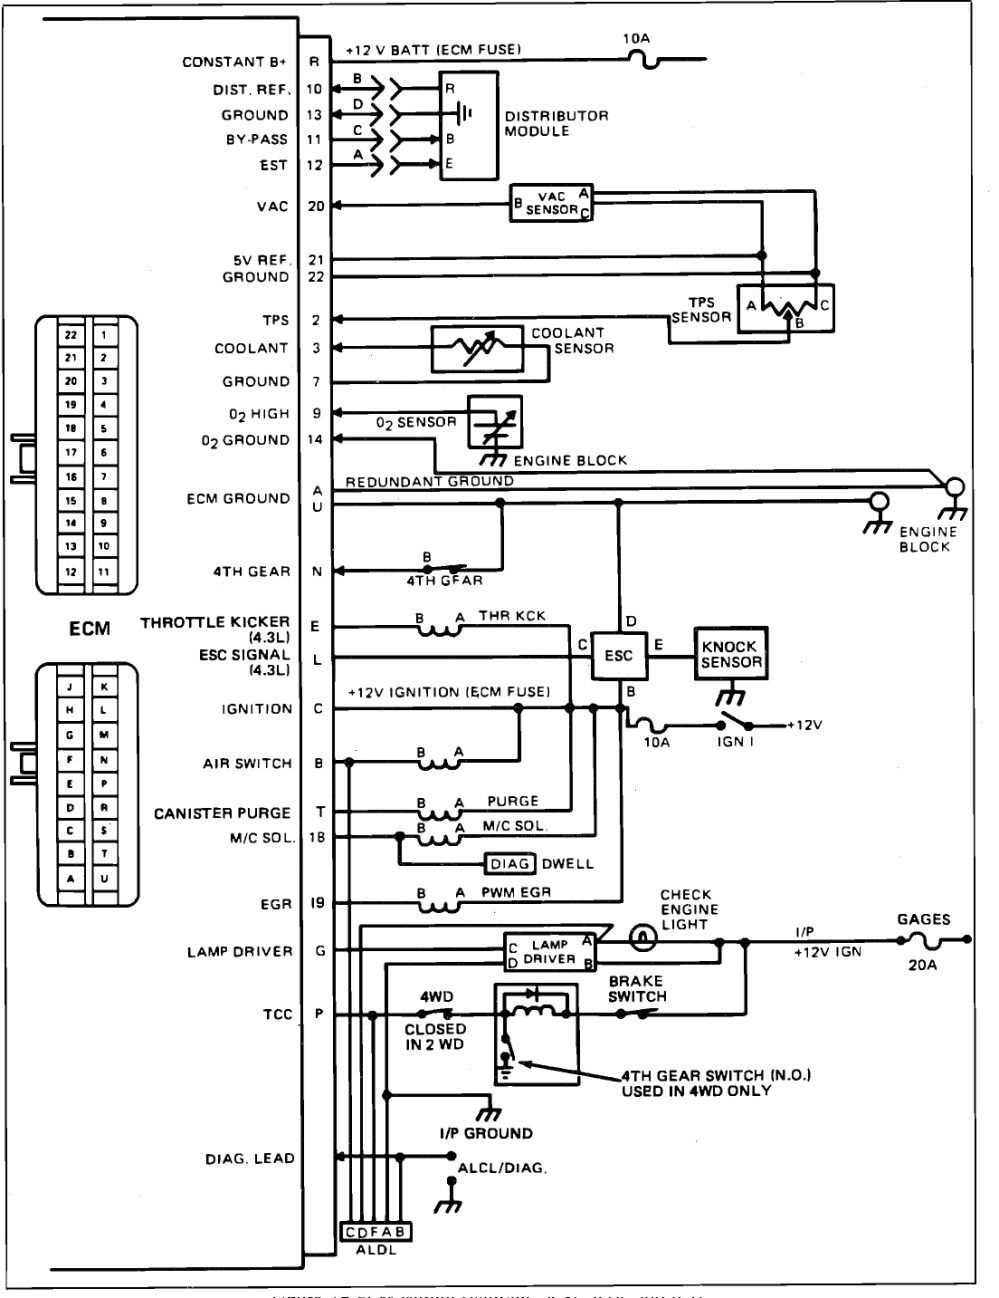 medium resolution of 1991 chevy corsica fuse diagram